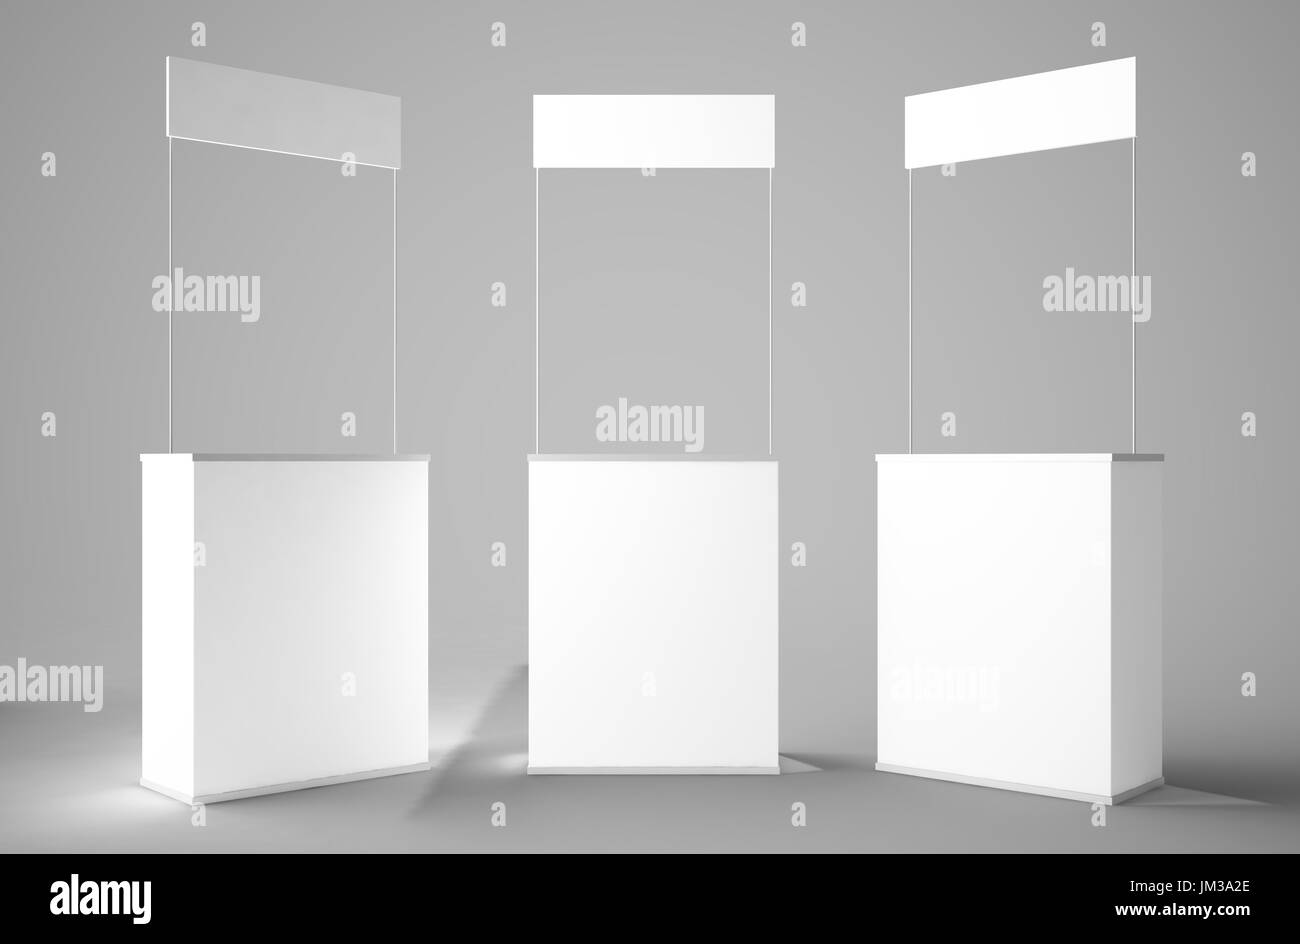 Exhibition Stall Mockup : 3d rendering of white stand stall bar mockup stock photo: 150049830